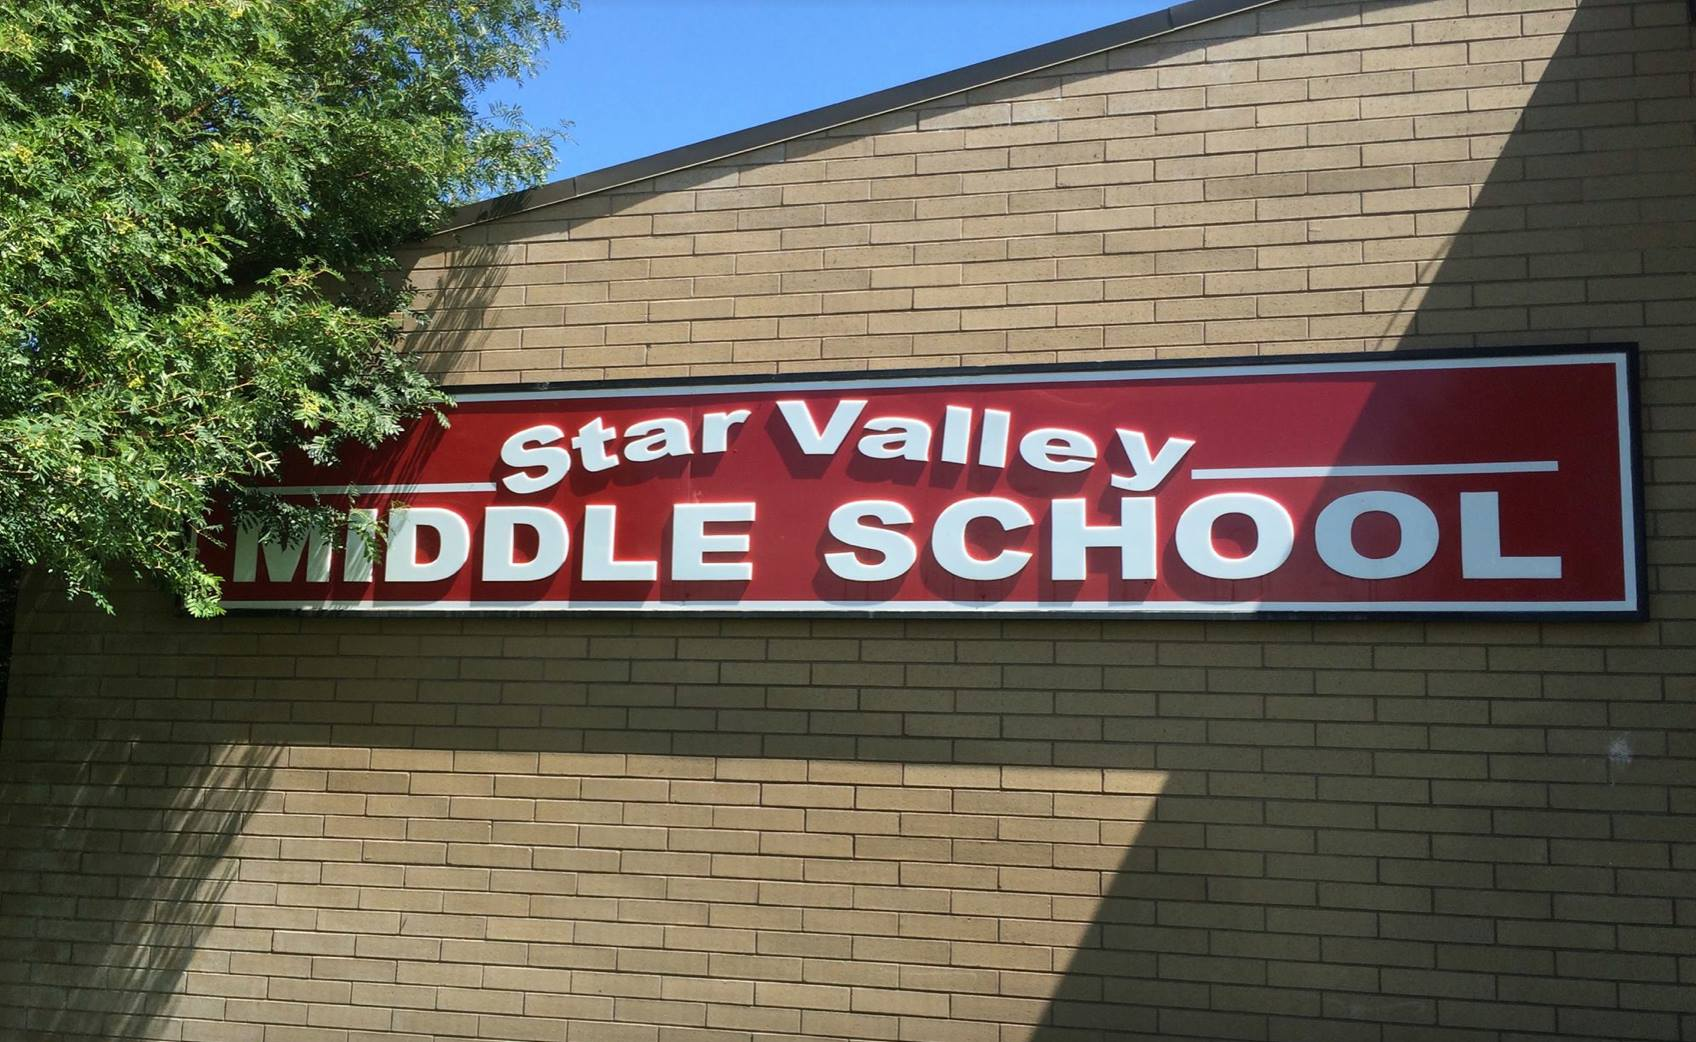 Star Valley Middle School